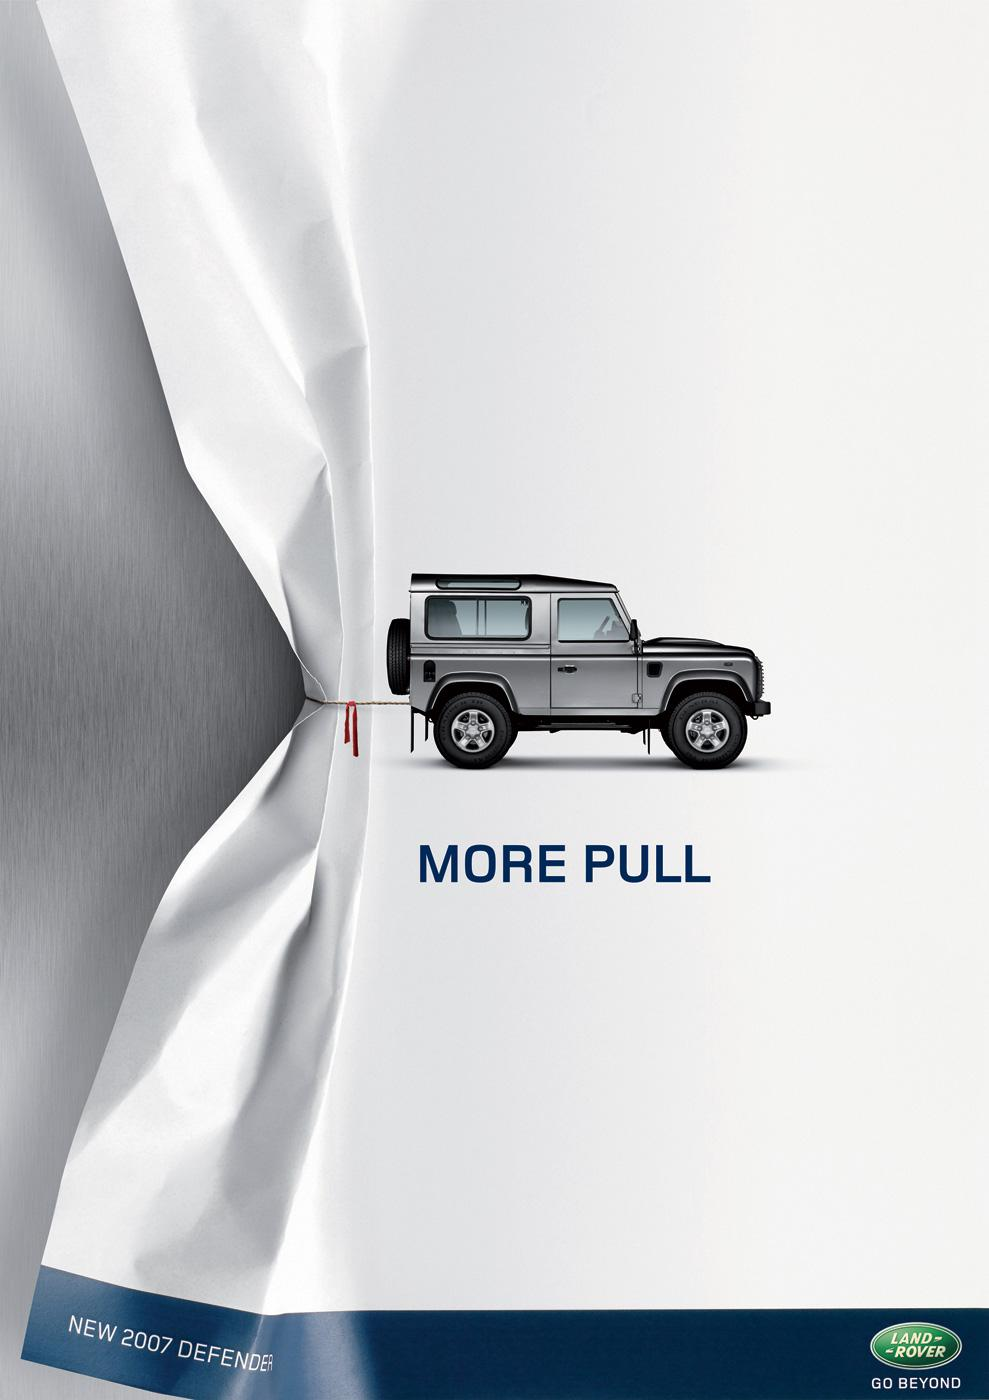 Land Rover UK: More pull